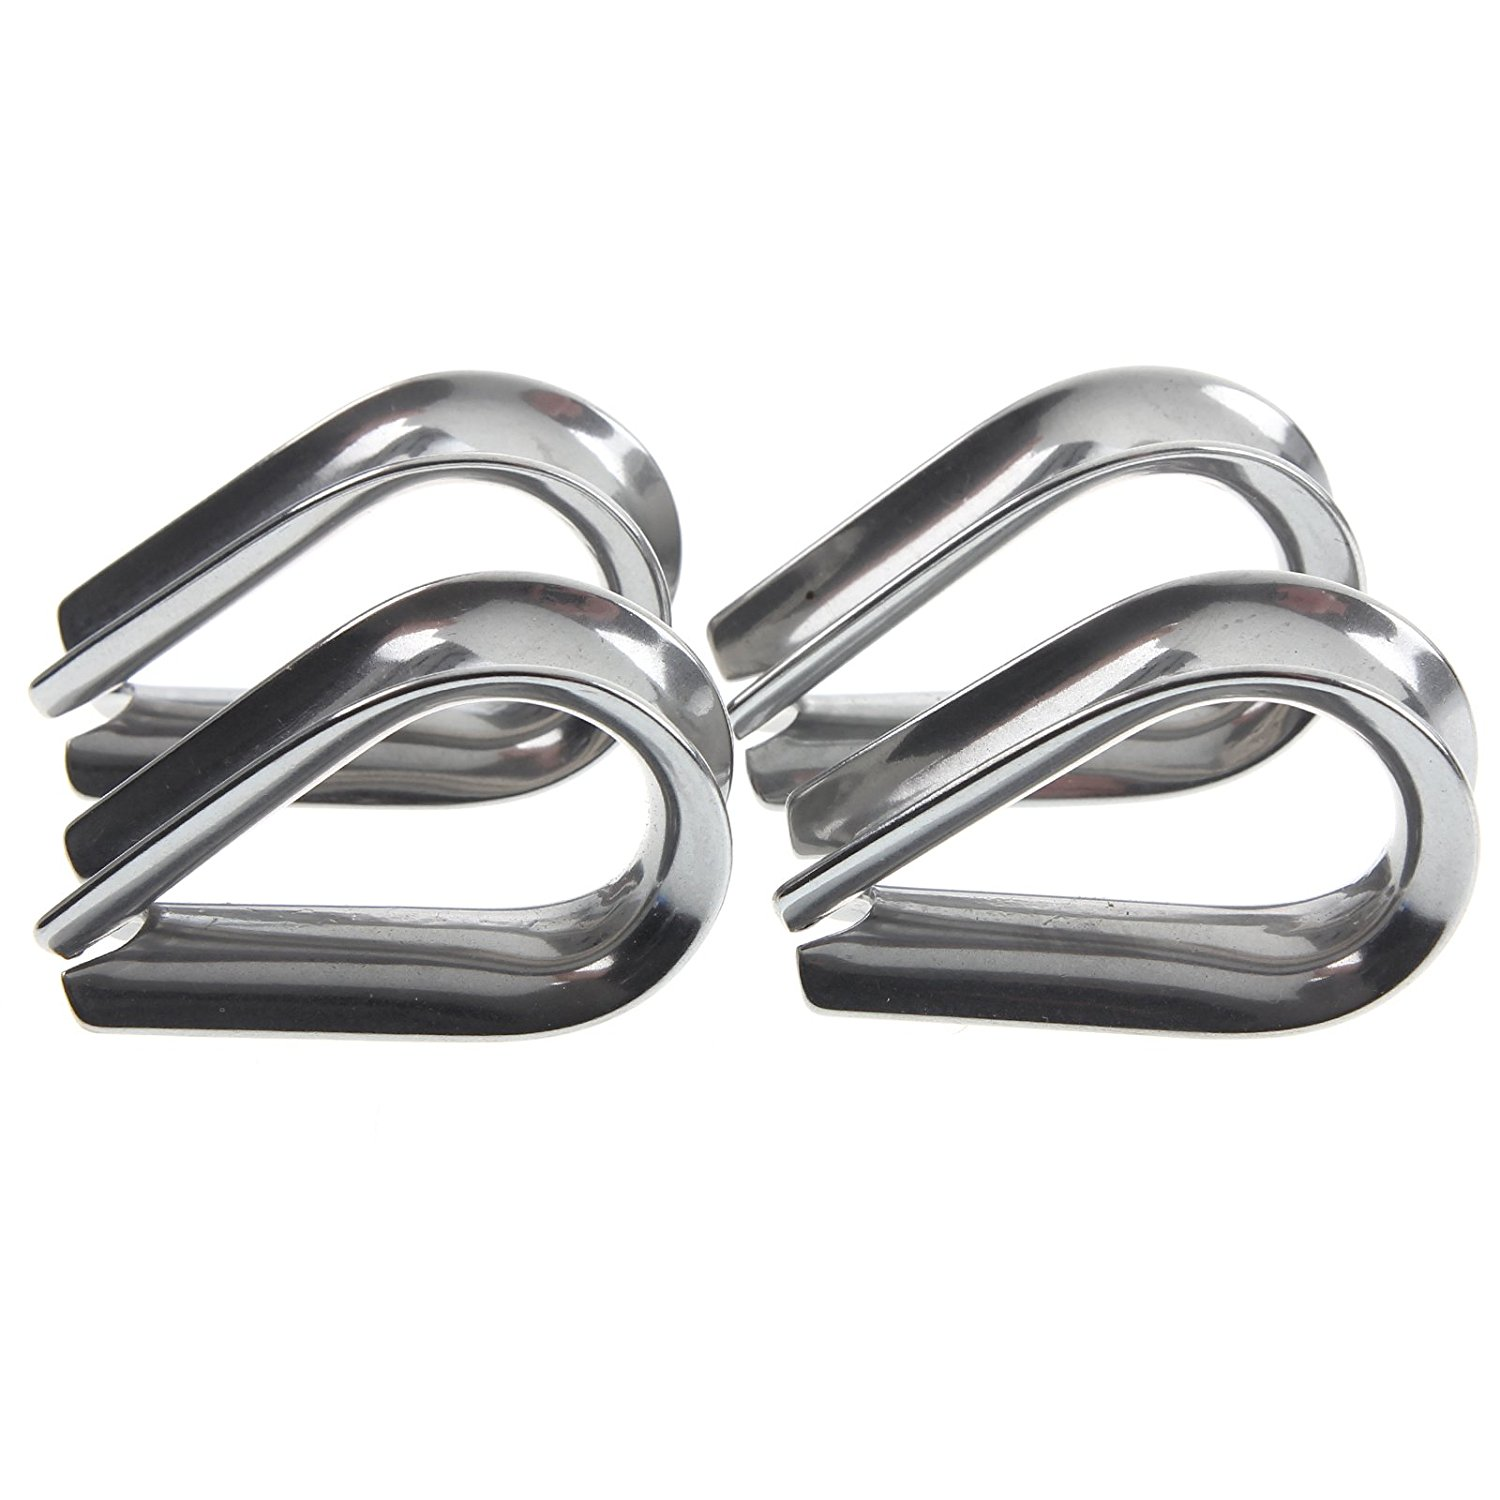 HHO-4 X Stainless Steel - 3mm Wire Rope Loop Rope Thimbles